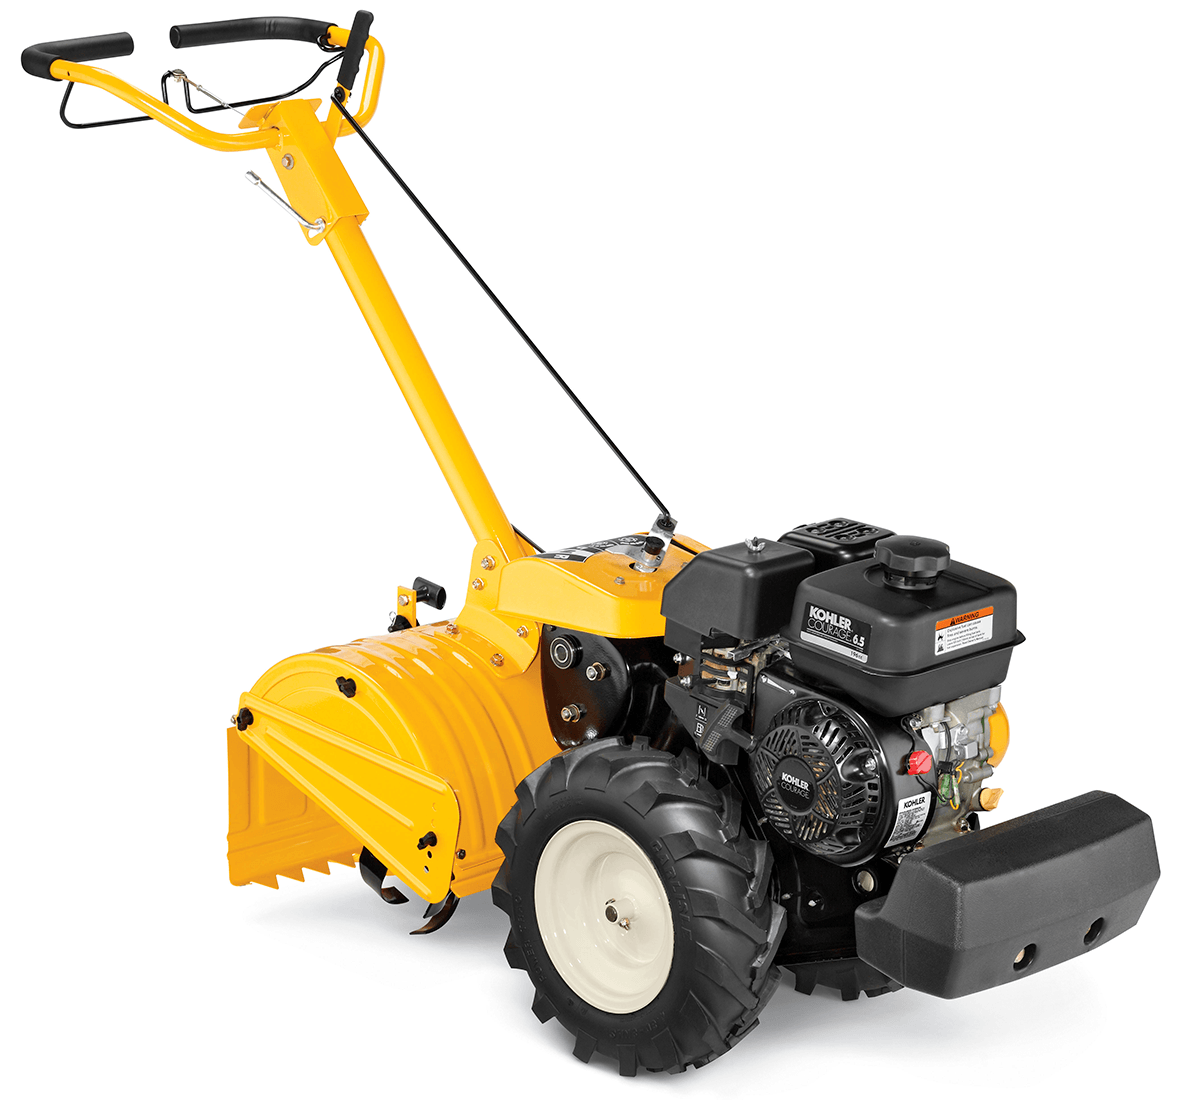 2018 Cub Cadet RT 65 Garden Tiller in Sturgeon Bay, Wisconsin